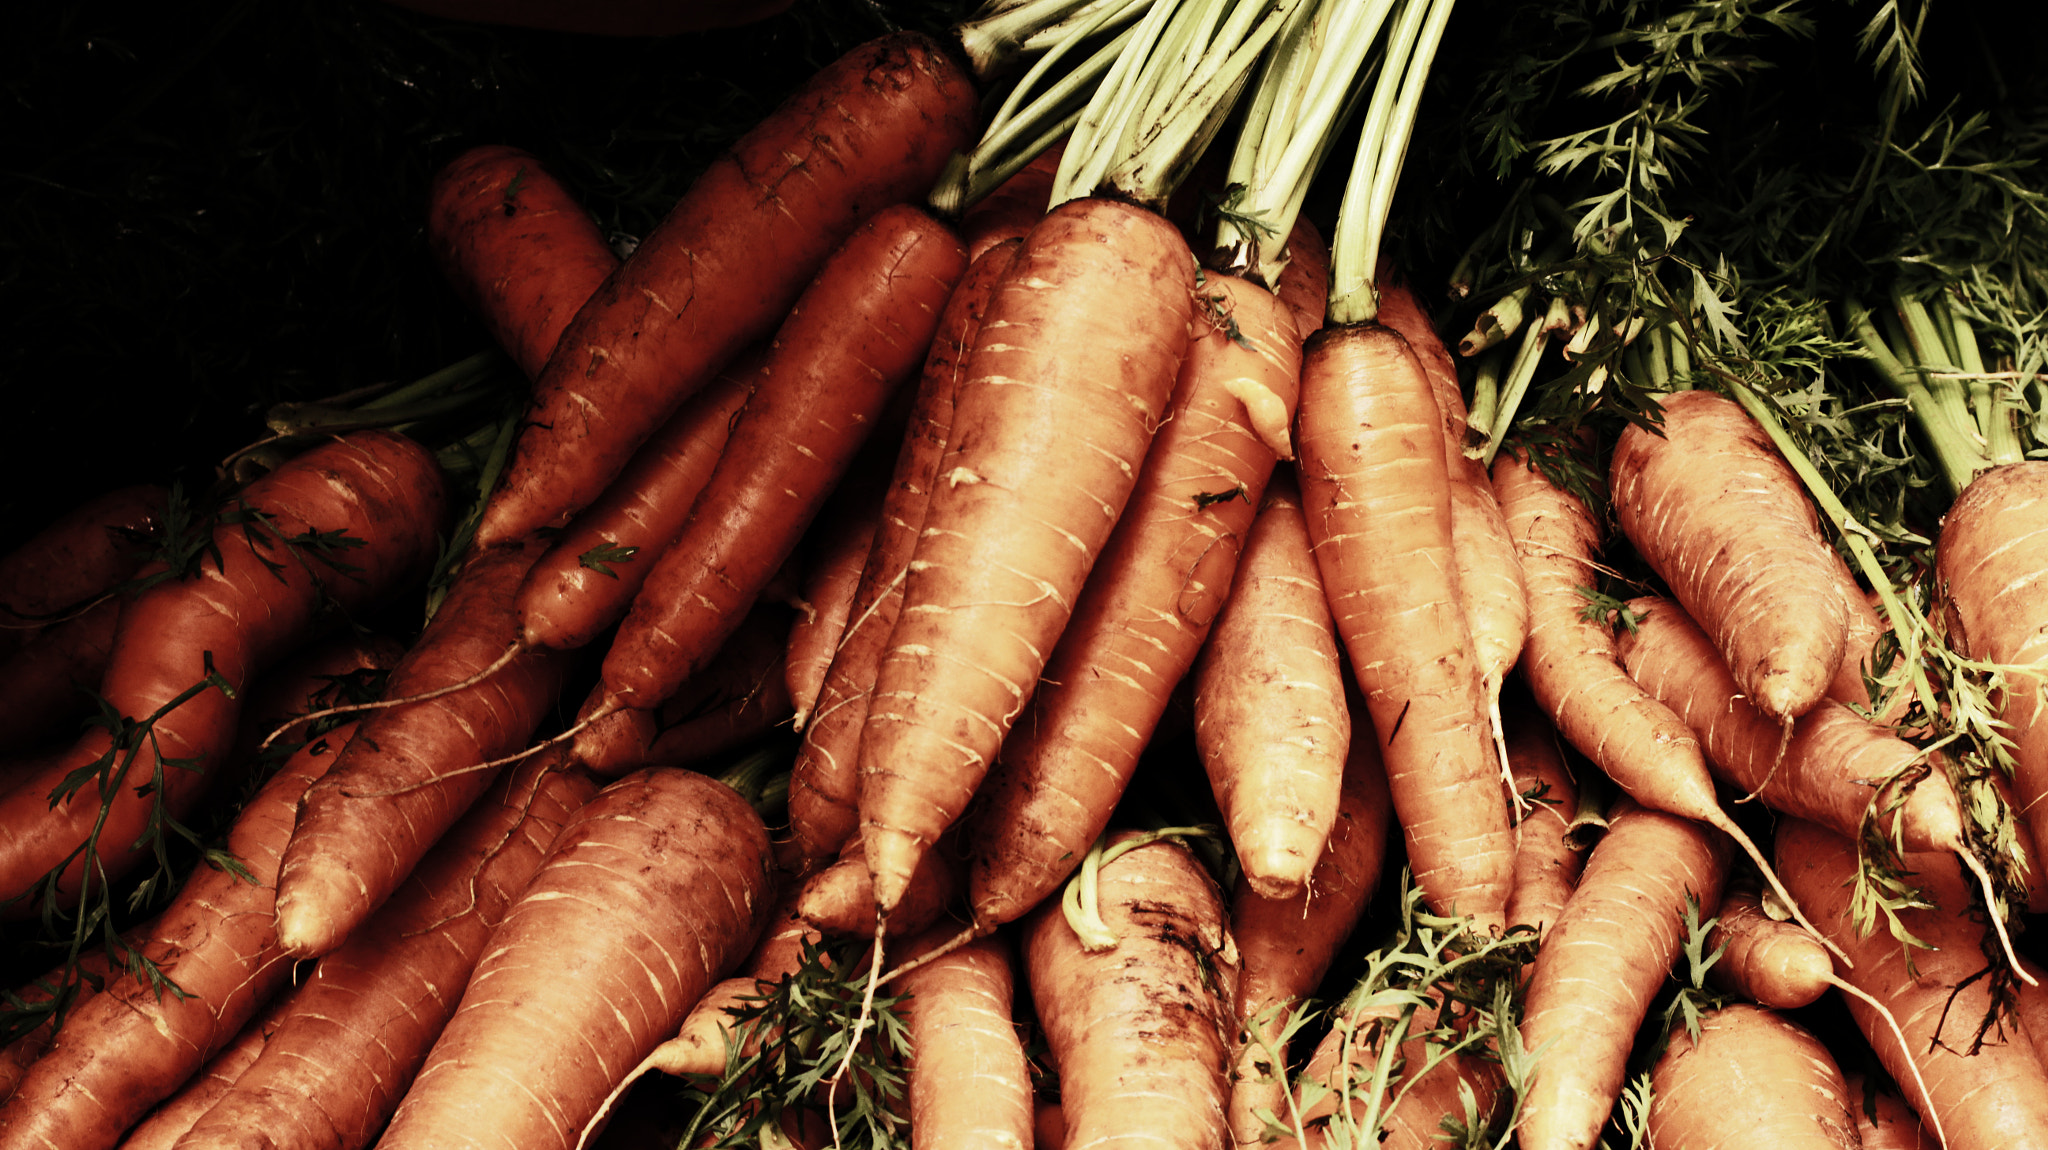 Photograph Turtle Bay Farmers Market - Carrots by Mike Collins on 500px